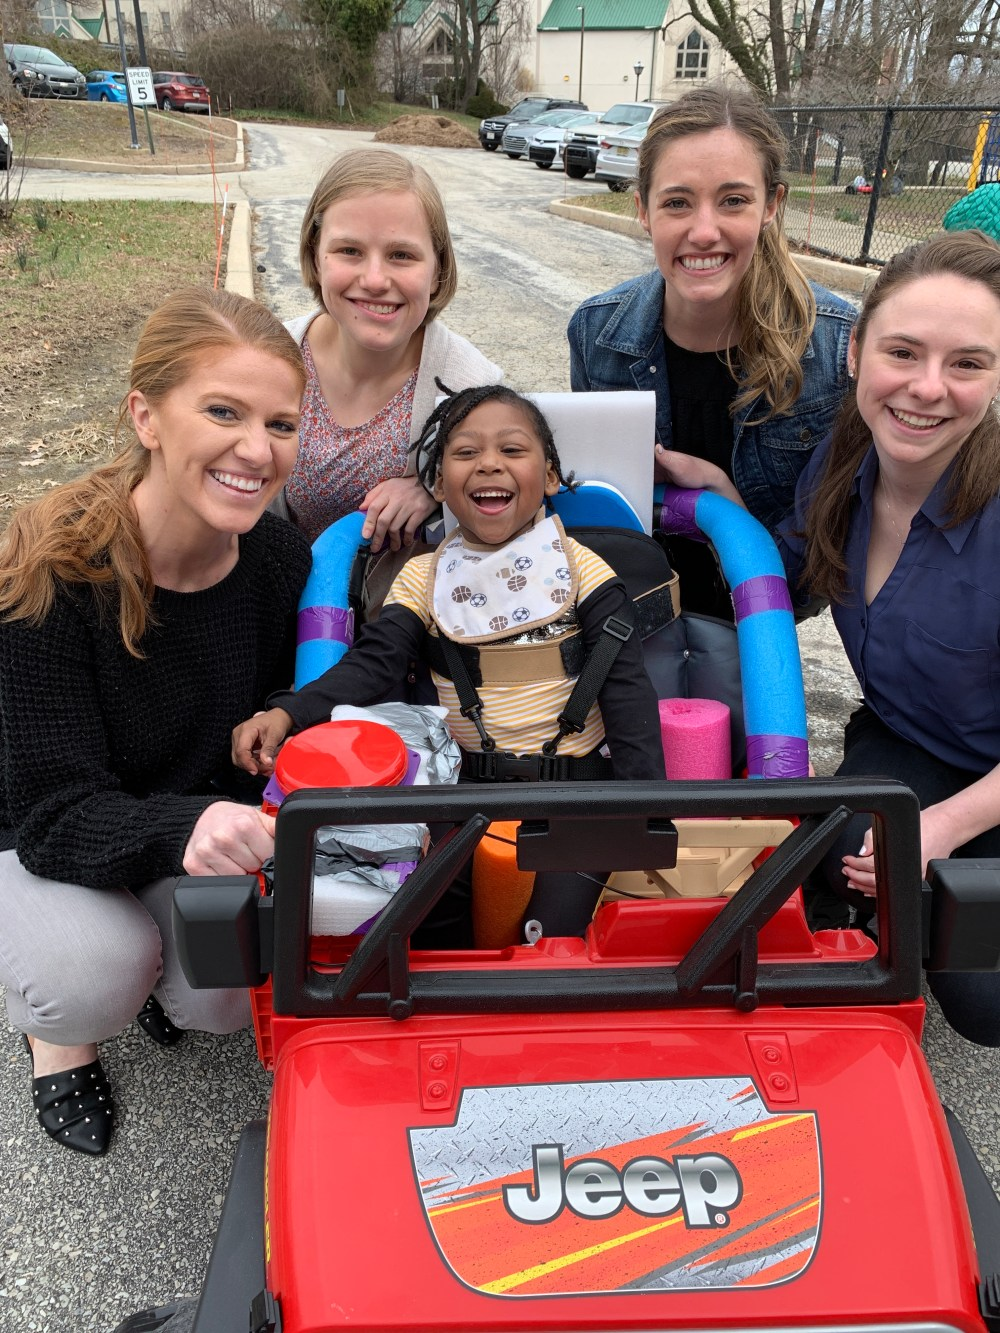 Ariel poses in her new Jeep with students from Jefferson University.